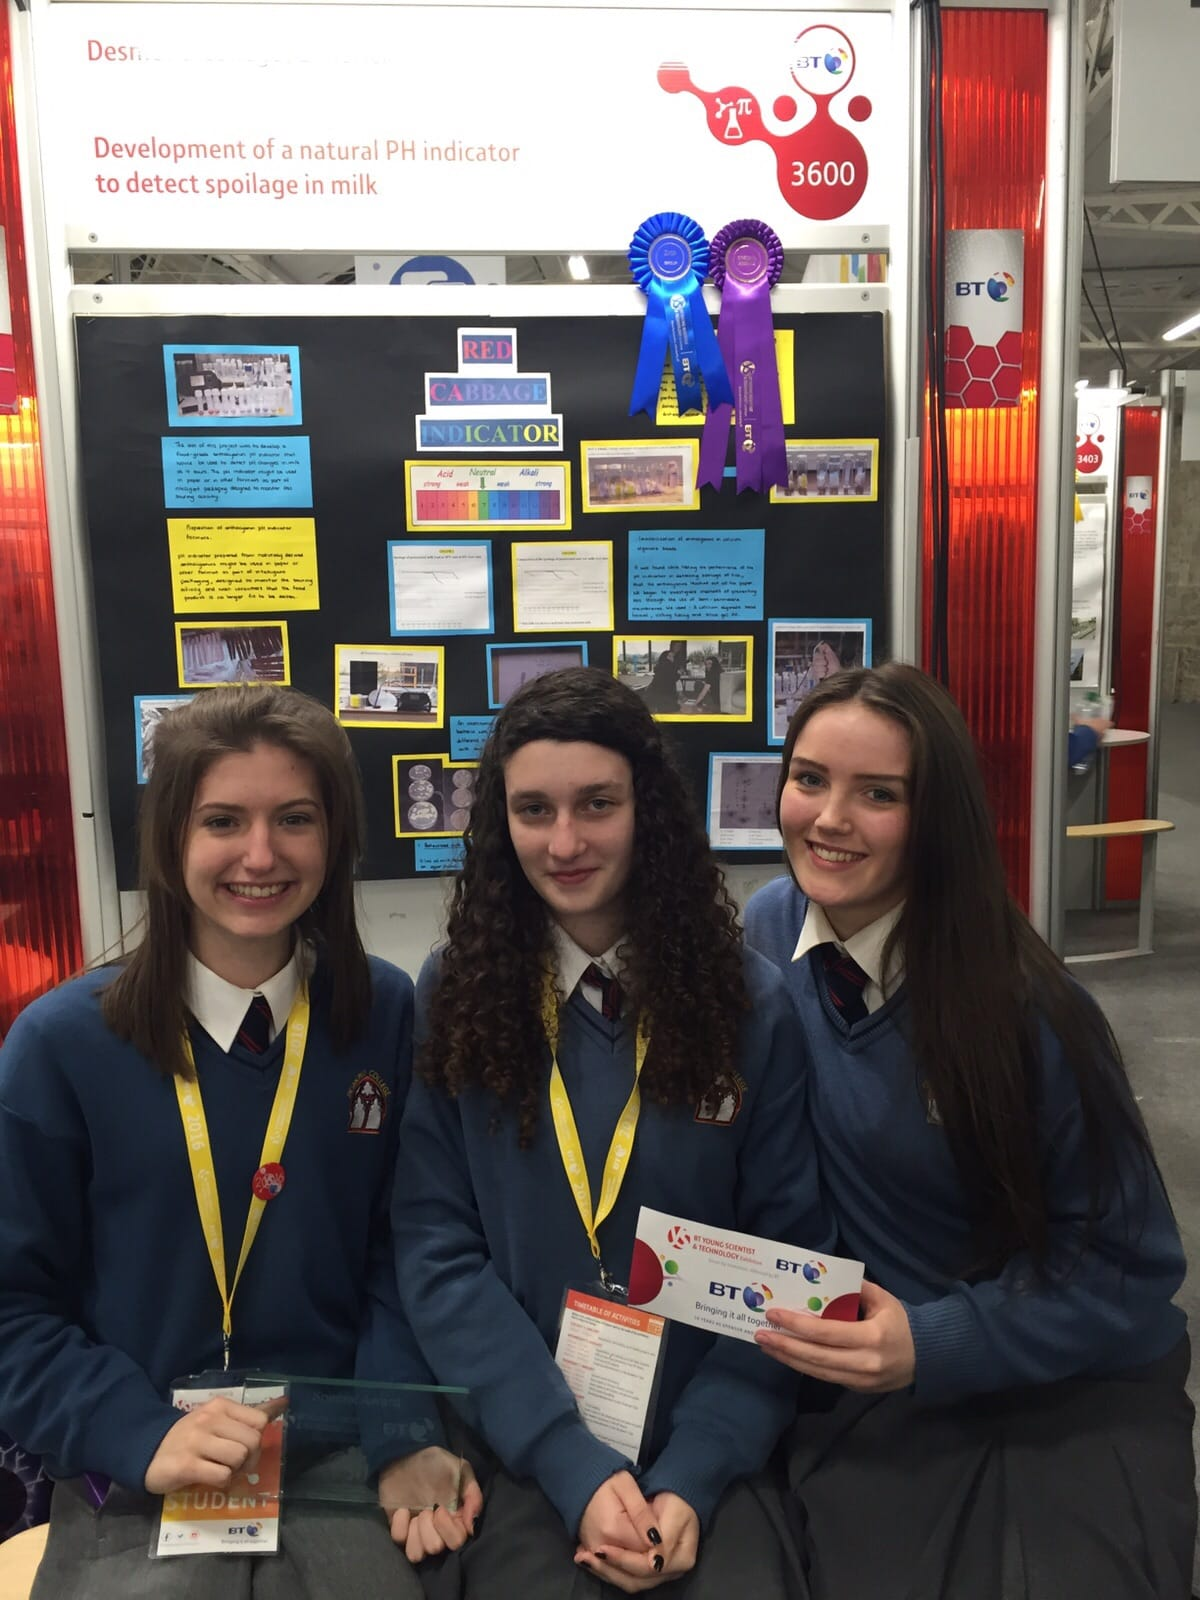 Jan 2016: Alanna Slater, Suin Ni Cheallaigh and Roisin Nolan who won both a special merit award from The ScienceFoundation of Ireland and also won 2nd prize in the Senior Chemical and Mathematical Group